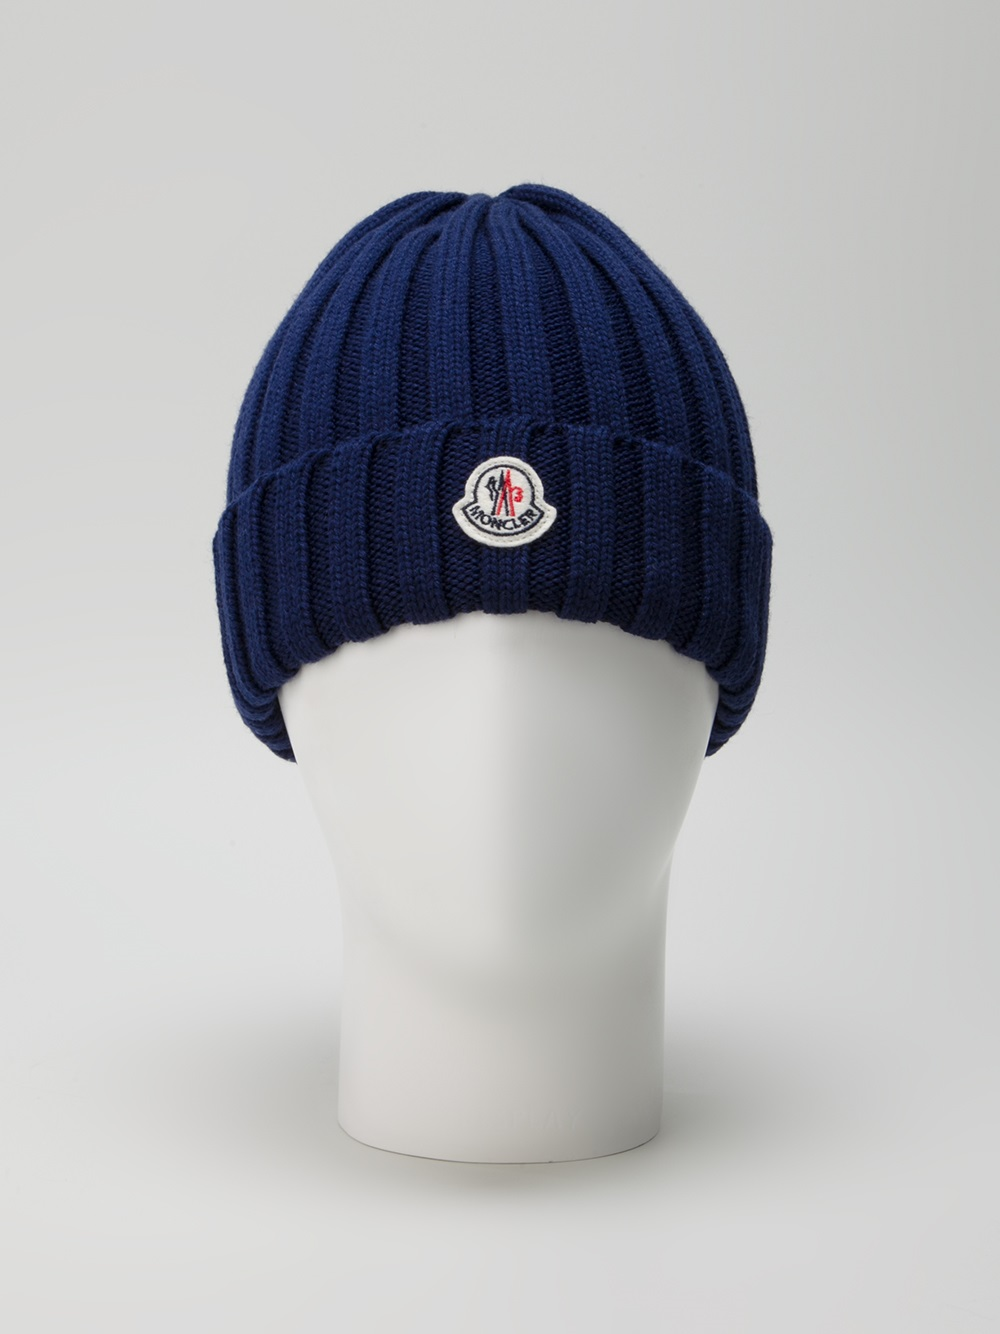 Moncler Wool Ribbed Knit Beanie Hat in Blue for Men - Lyst 257b8165ca0